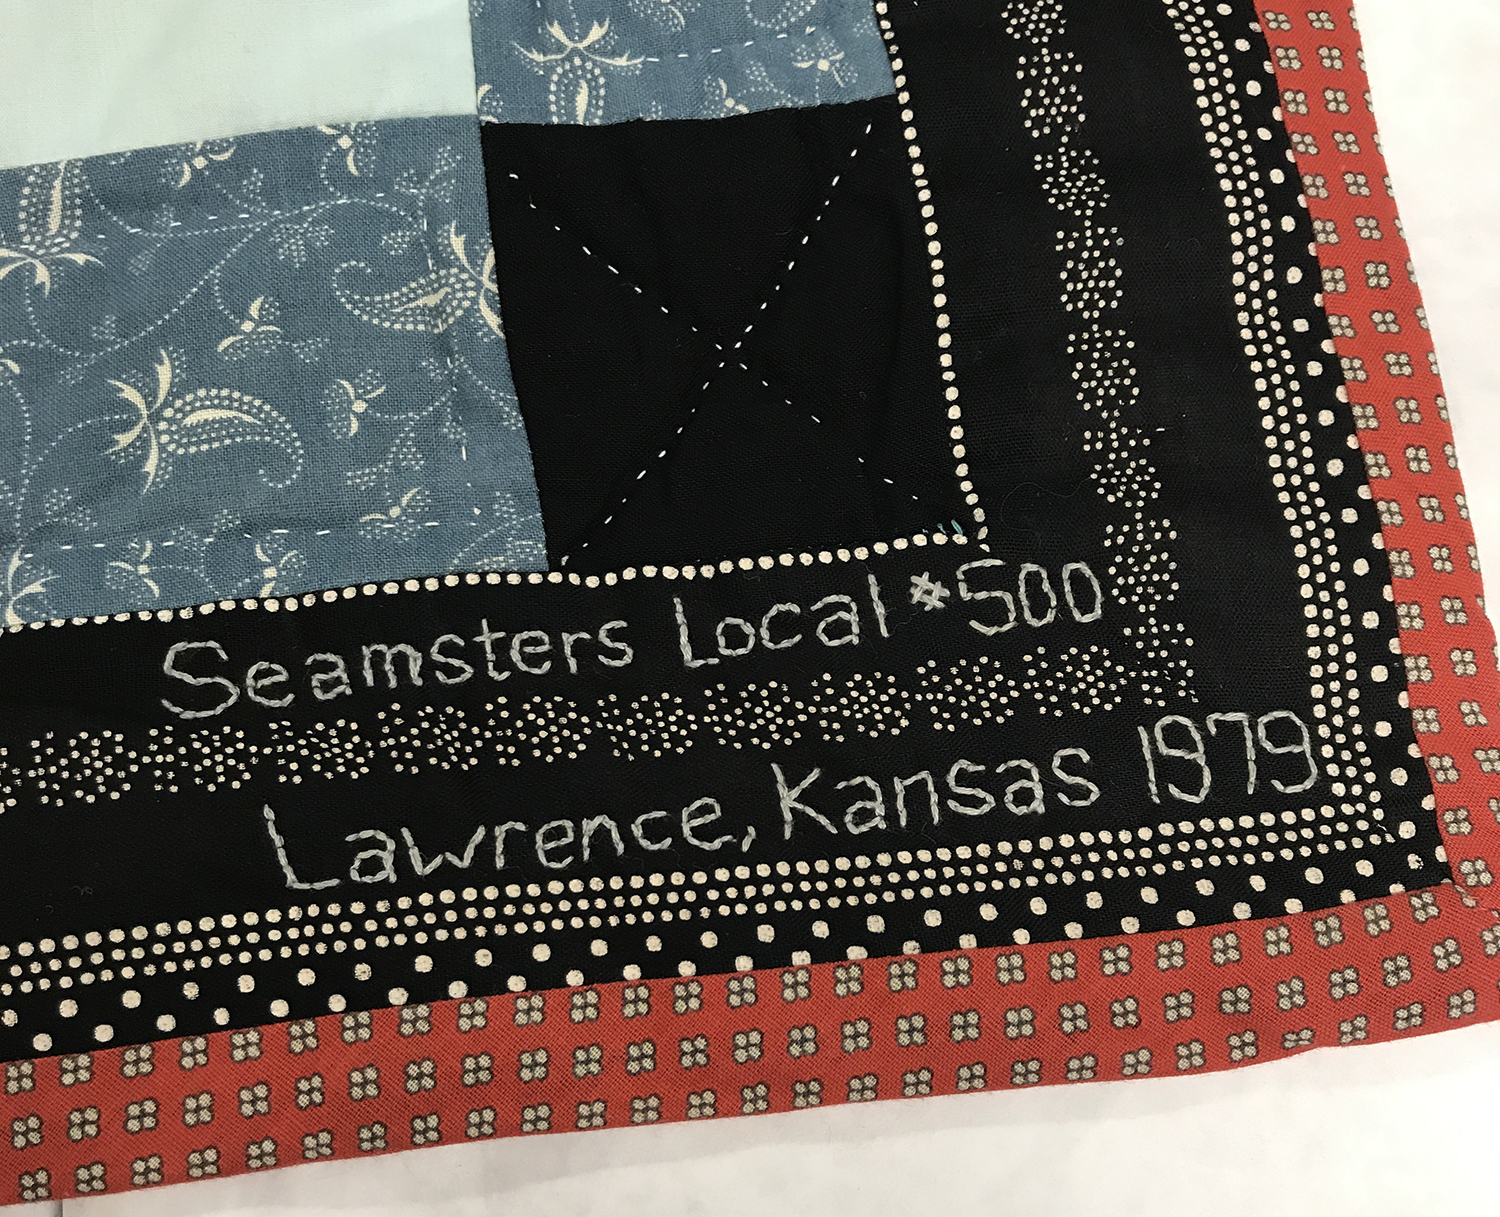 Seamsters Local #500